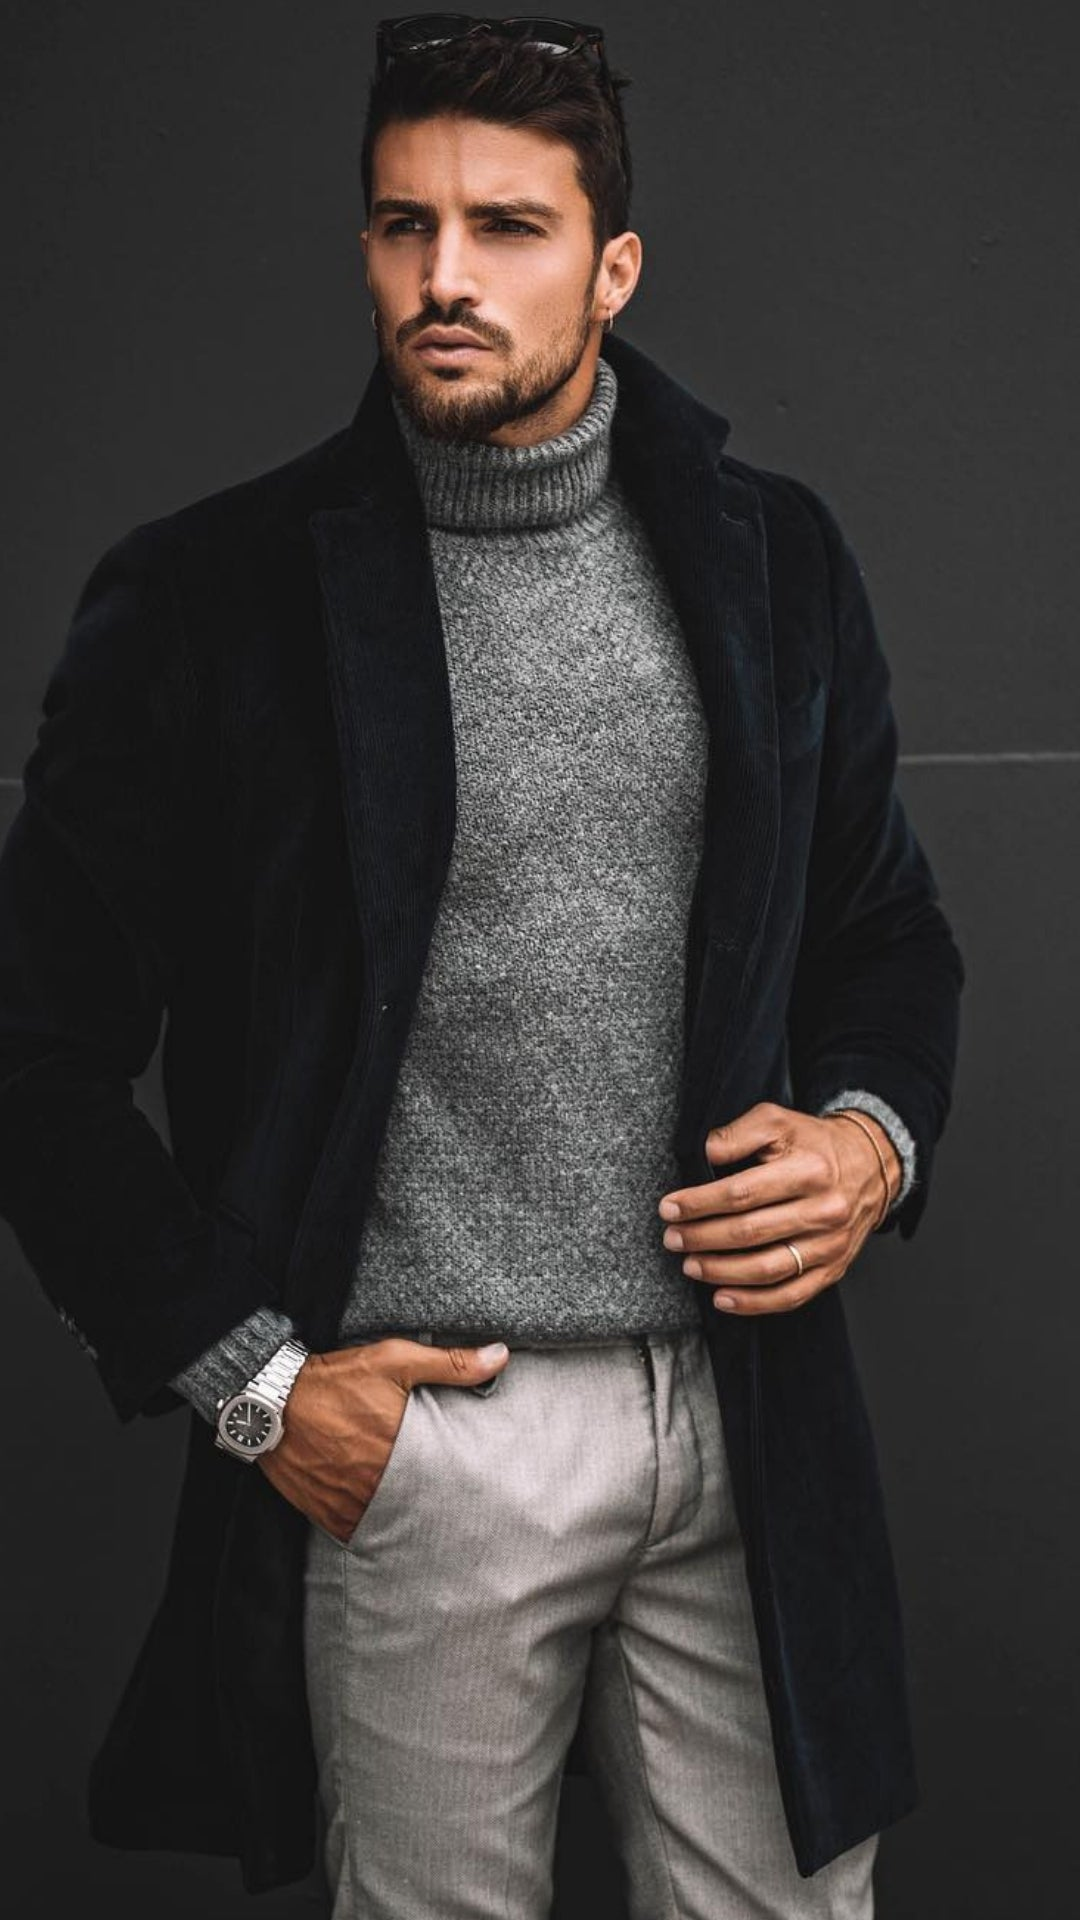 5 Outfits I'm Stealing From Mariano Di Vaio #celebrity #mensfashion #streetstyle